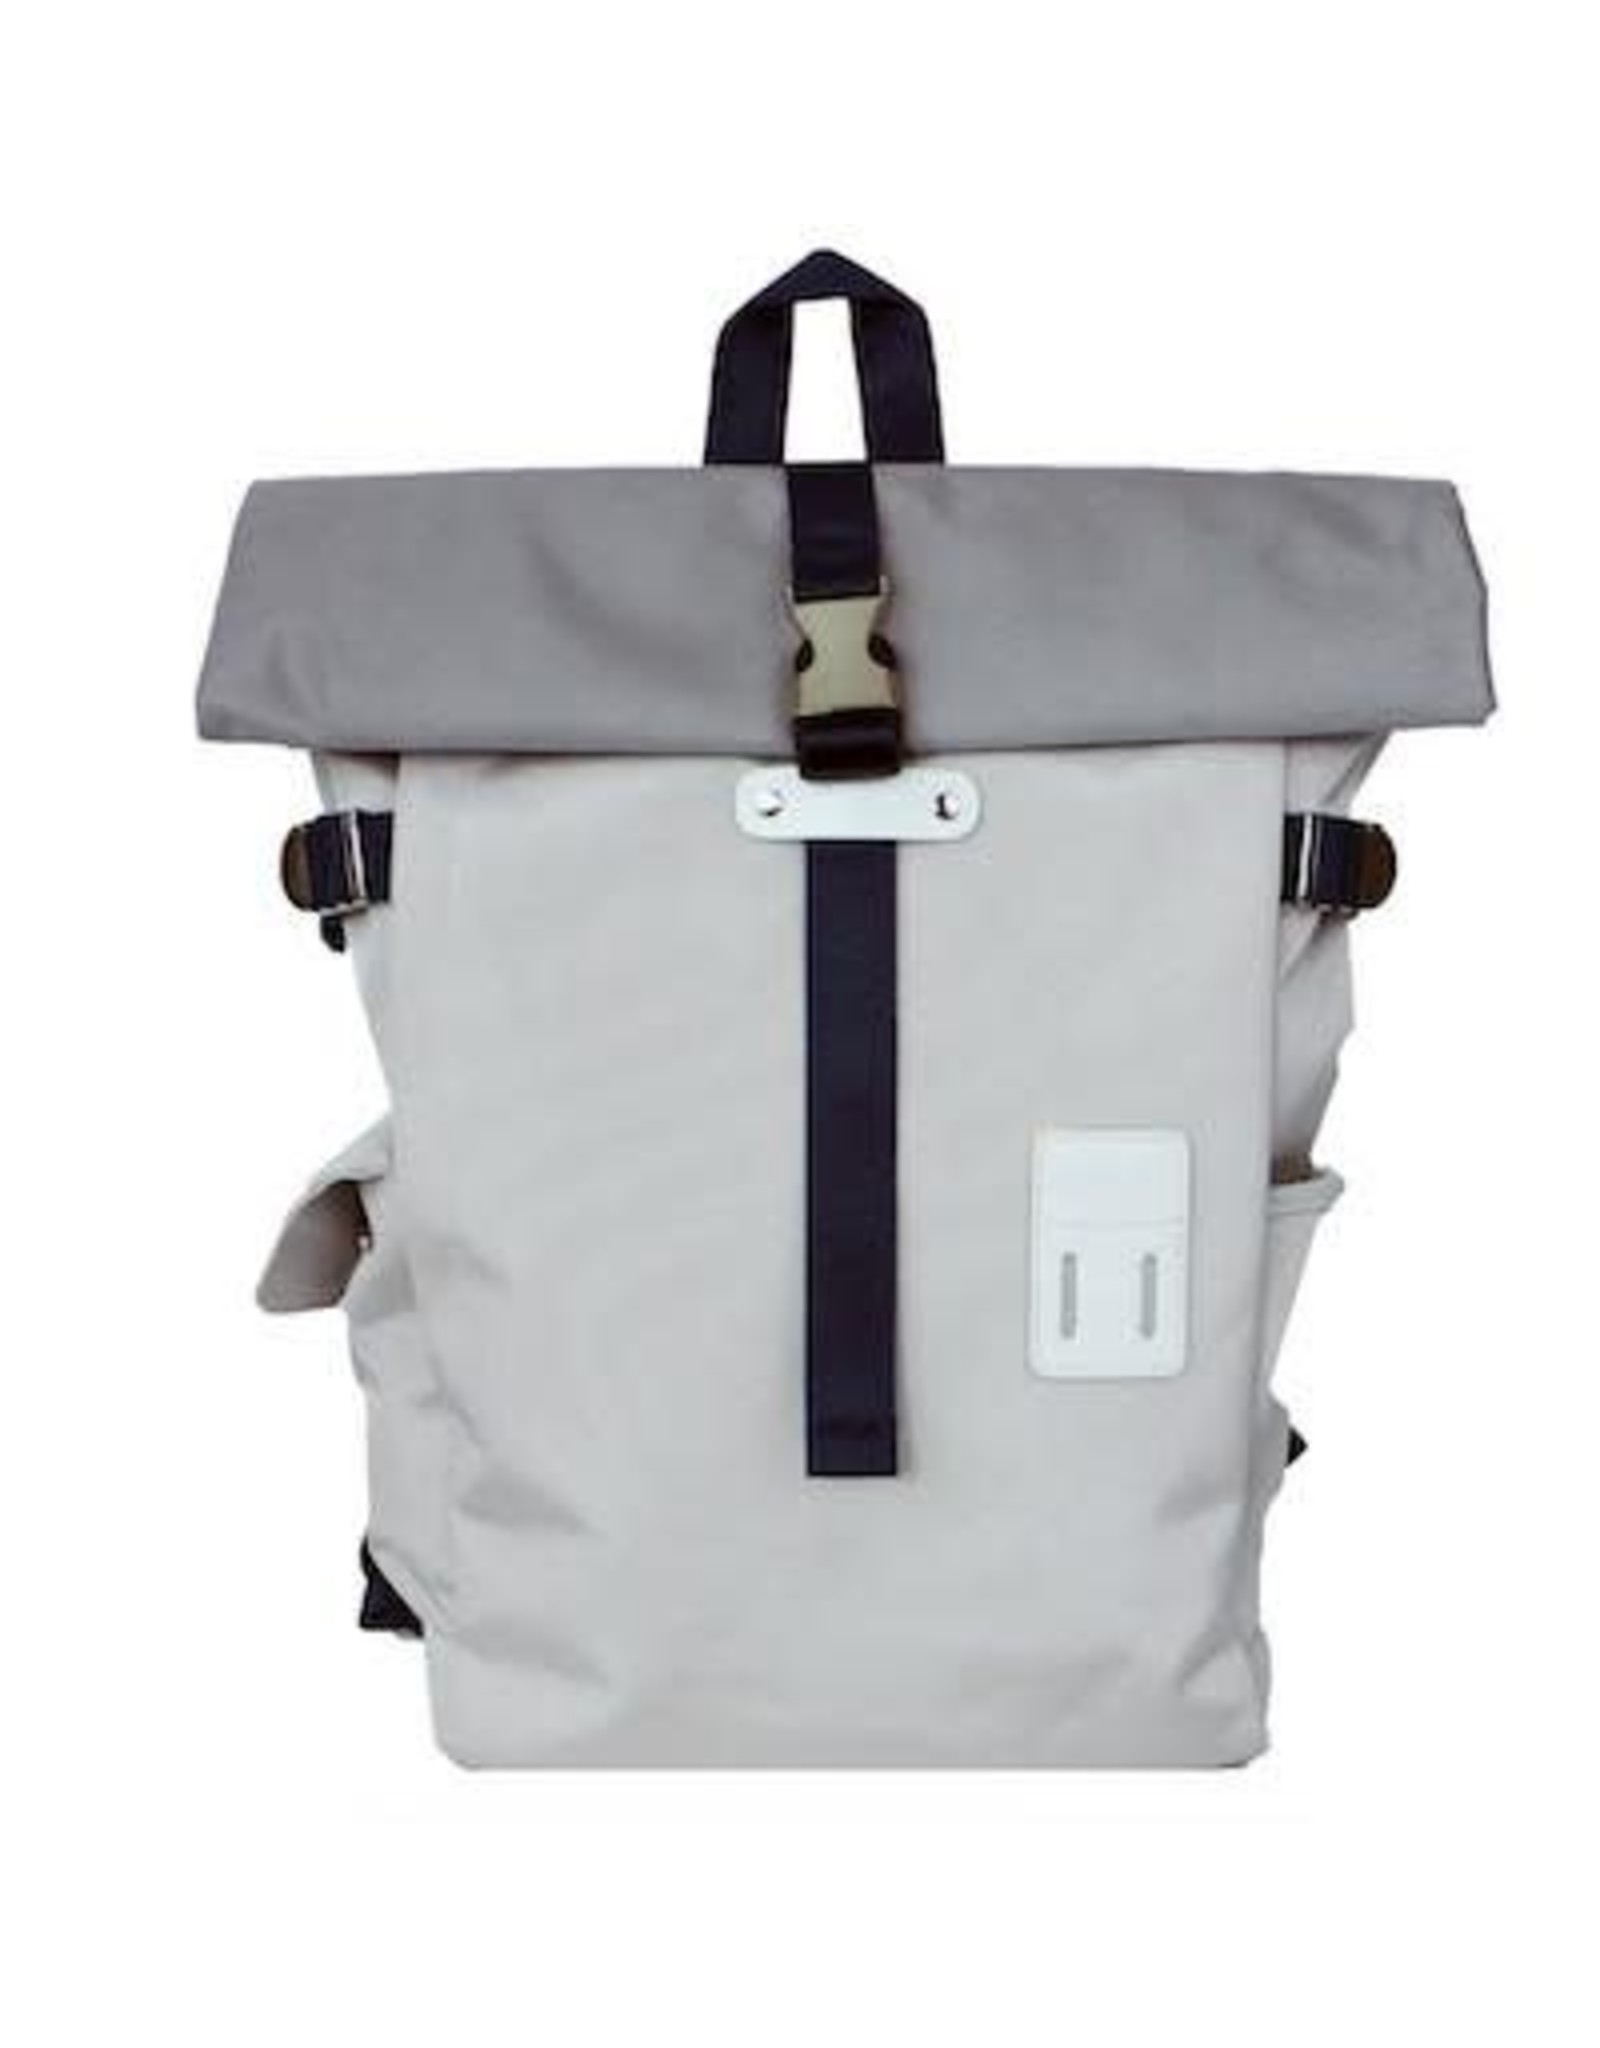 Molla Space Rolltop Backpack 2.0 - White